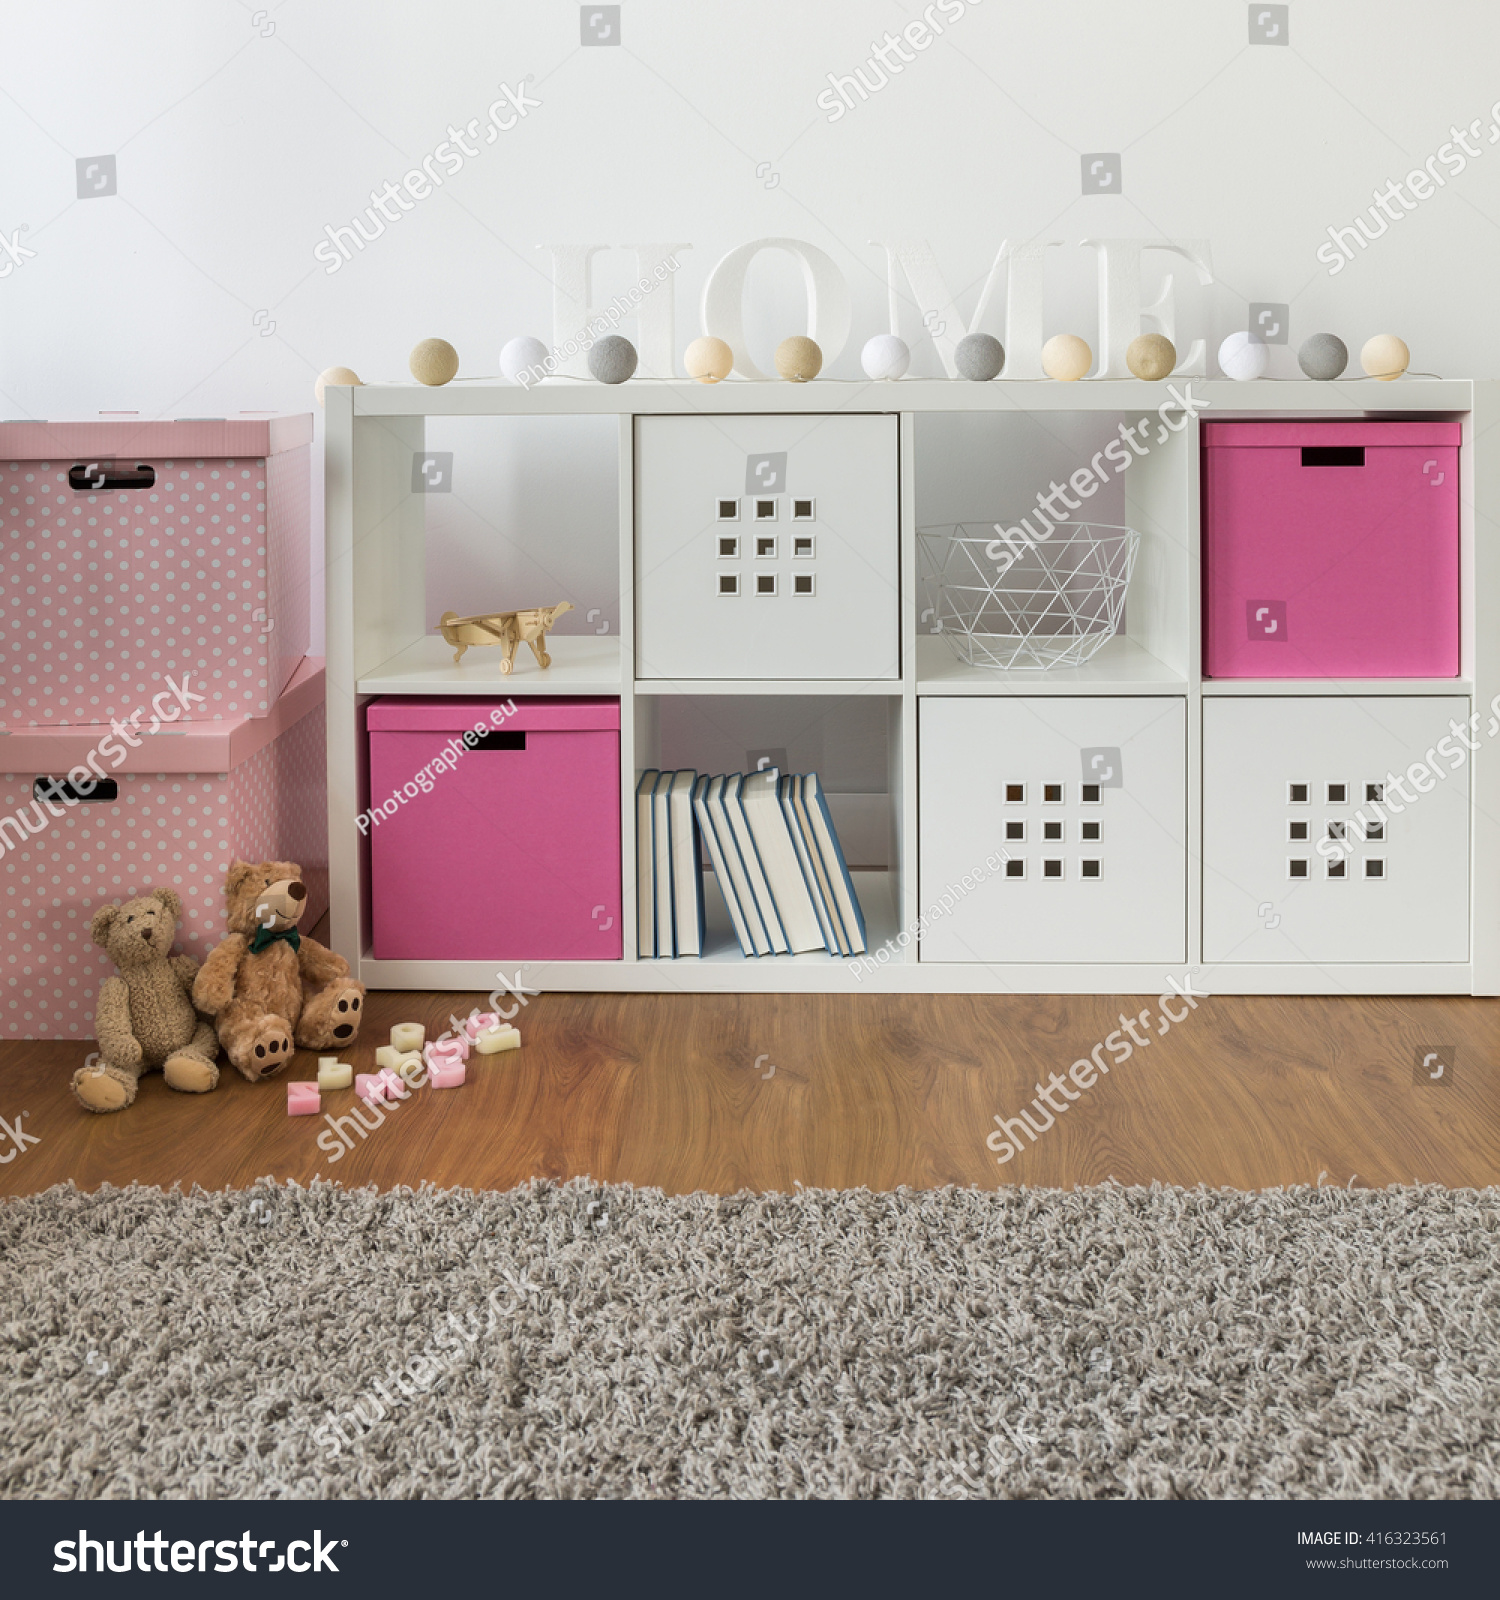 Commode Rose Commode Rose Boxes Childs Room Stock Photo Edit Now 416323561